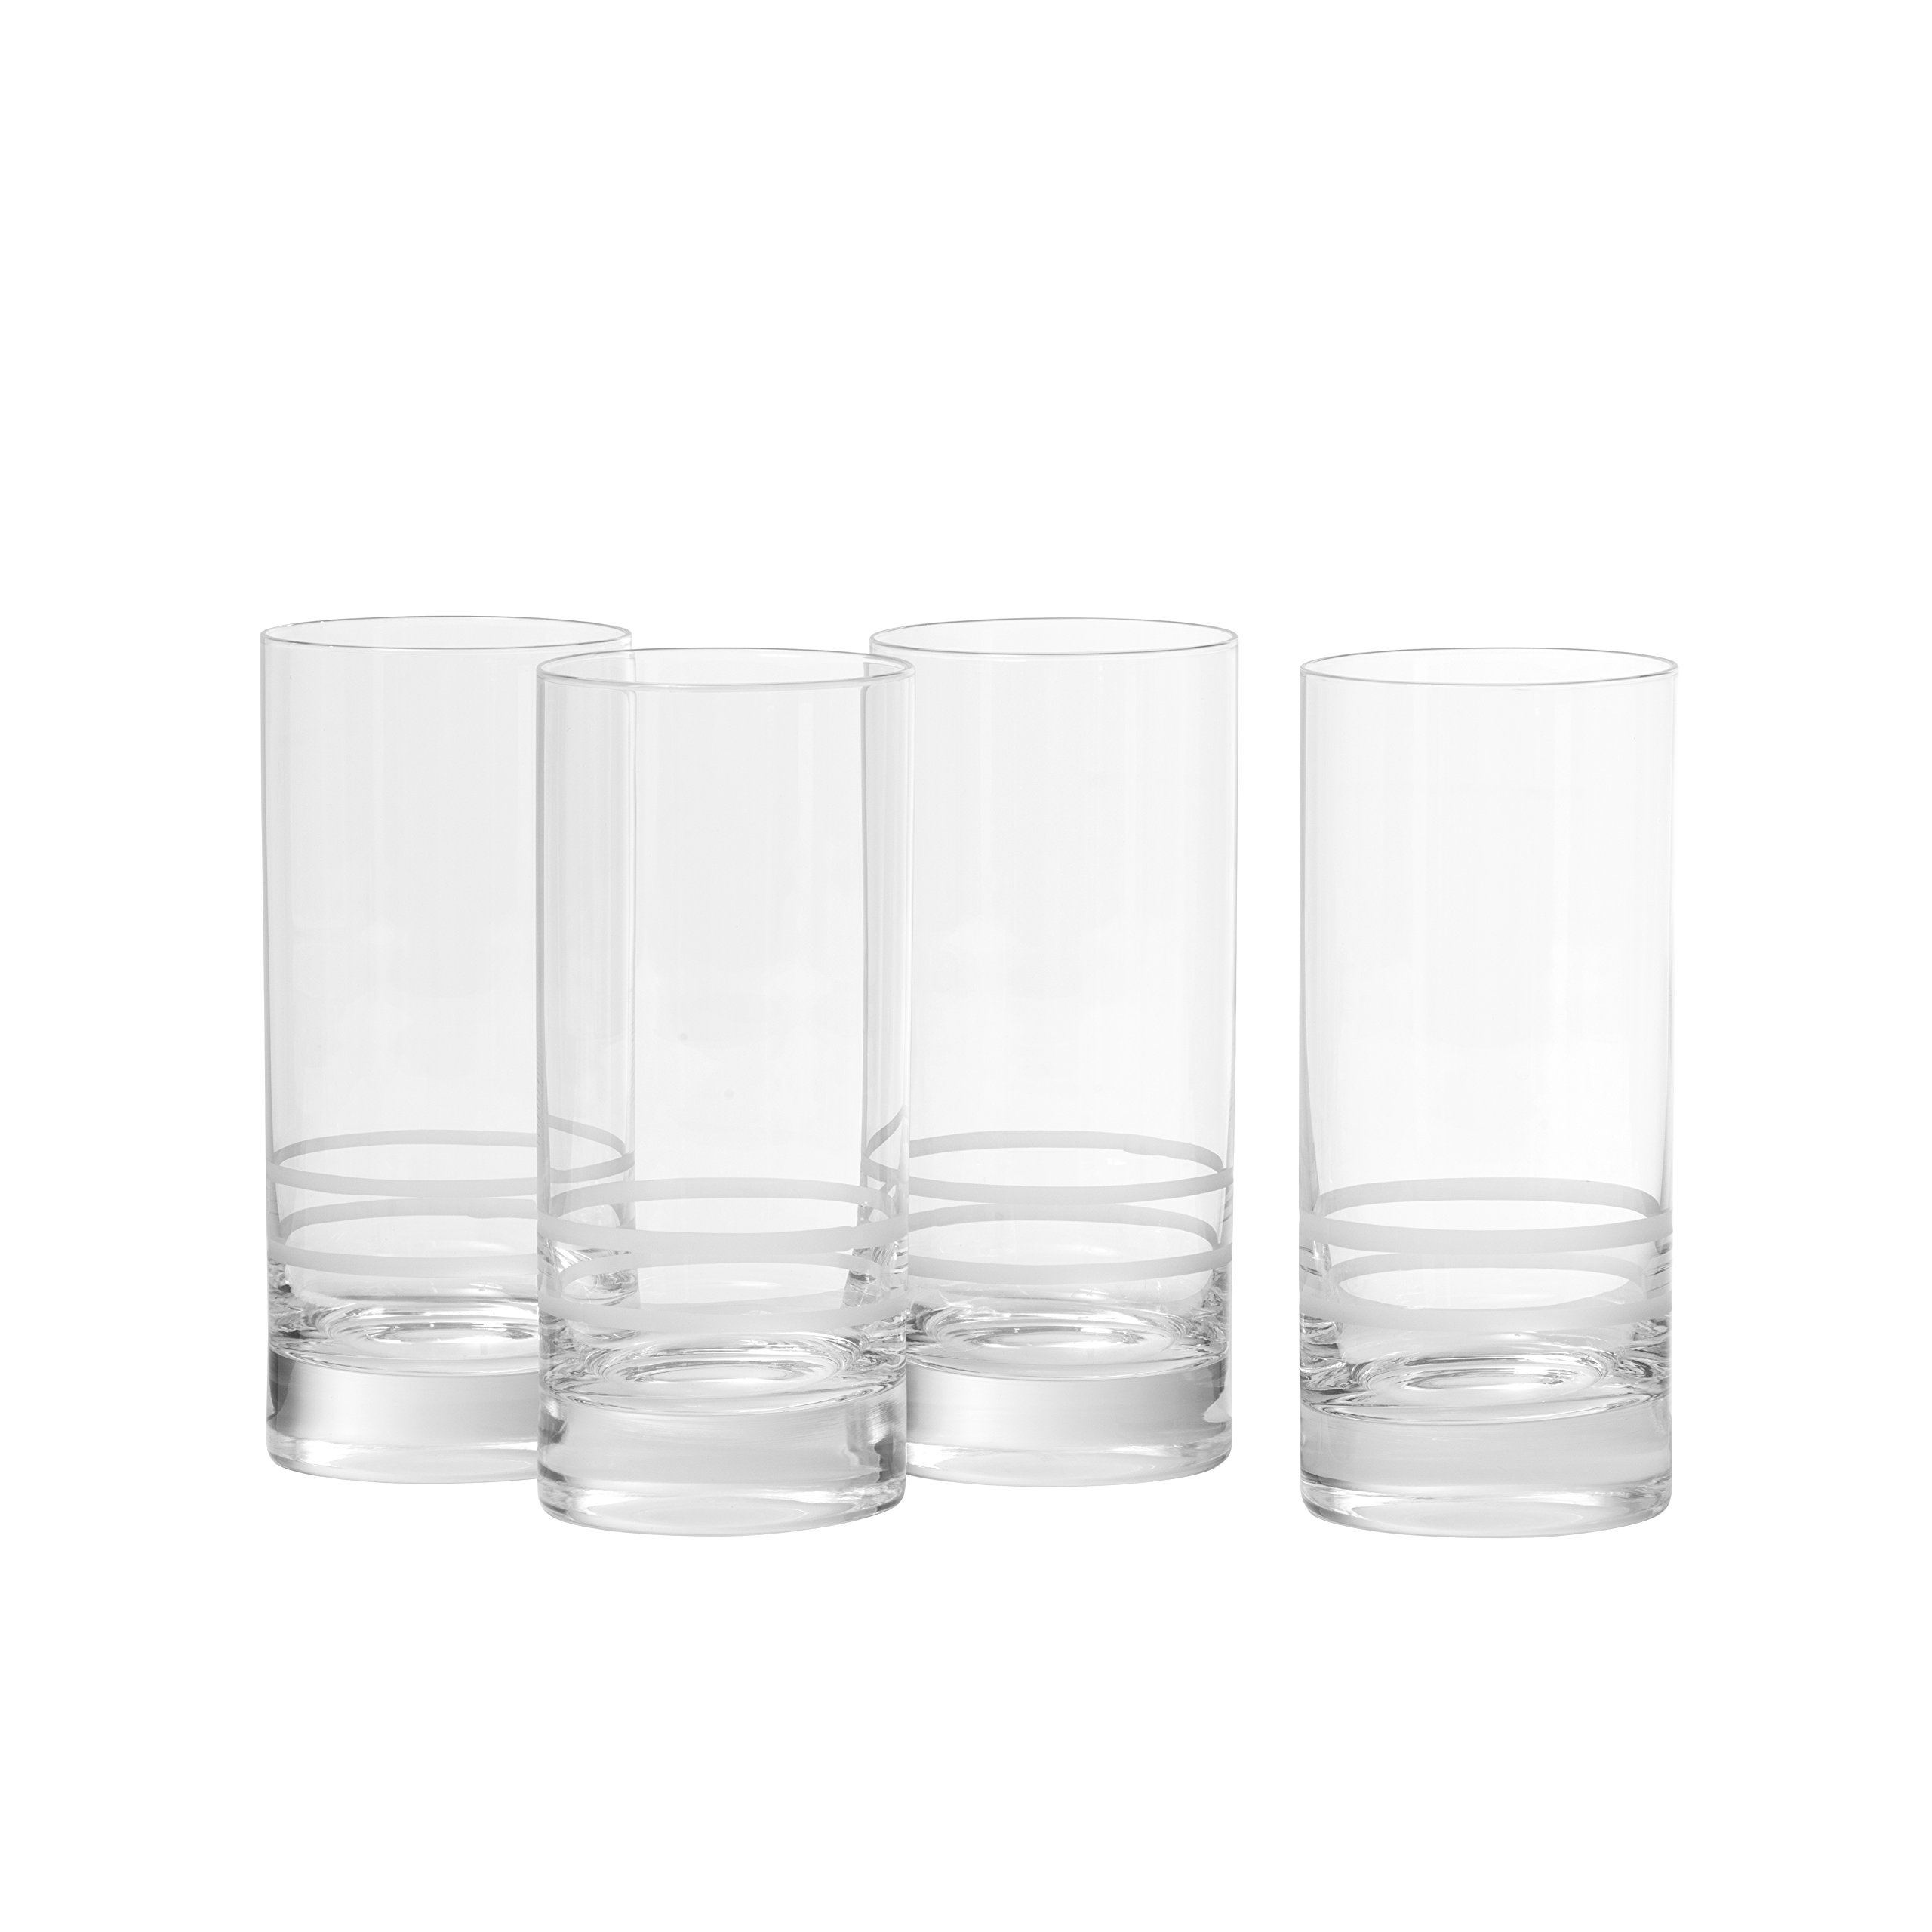 Crafthouse by Fortessa Professional Barware by Charles Joly, Etched Schott Zwiesel Tritan 16.2 oz Iced Beverage, Longdrink, Collins Barware/Cocktail Glass, Set of 4